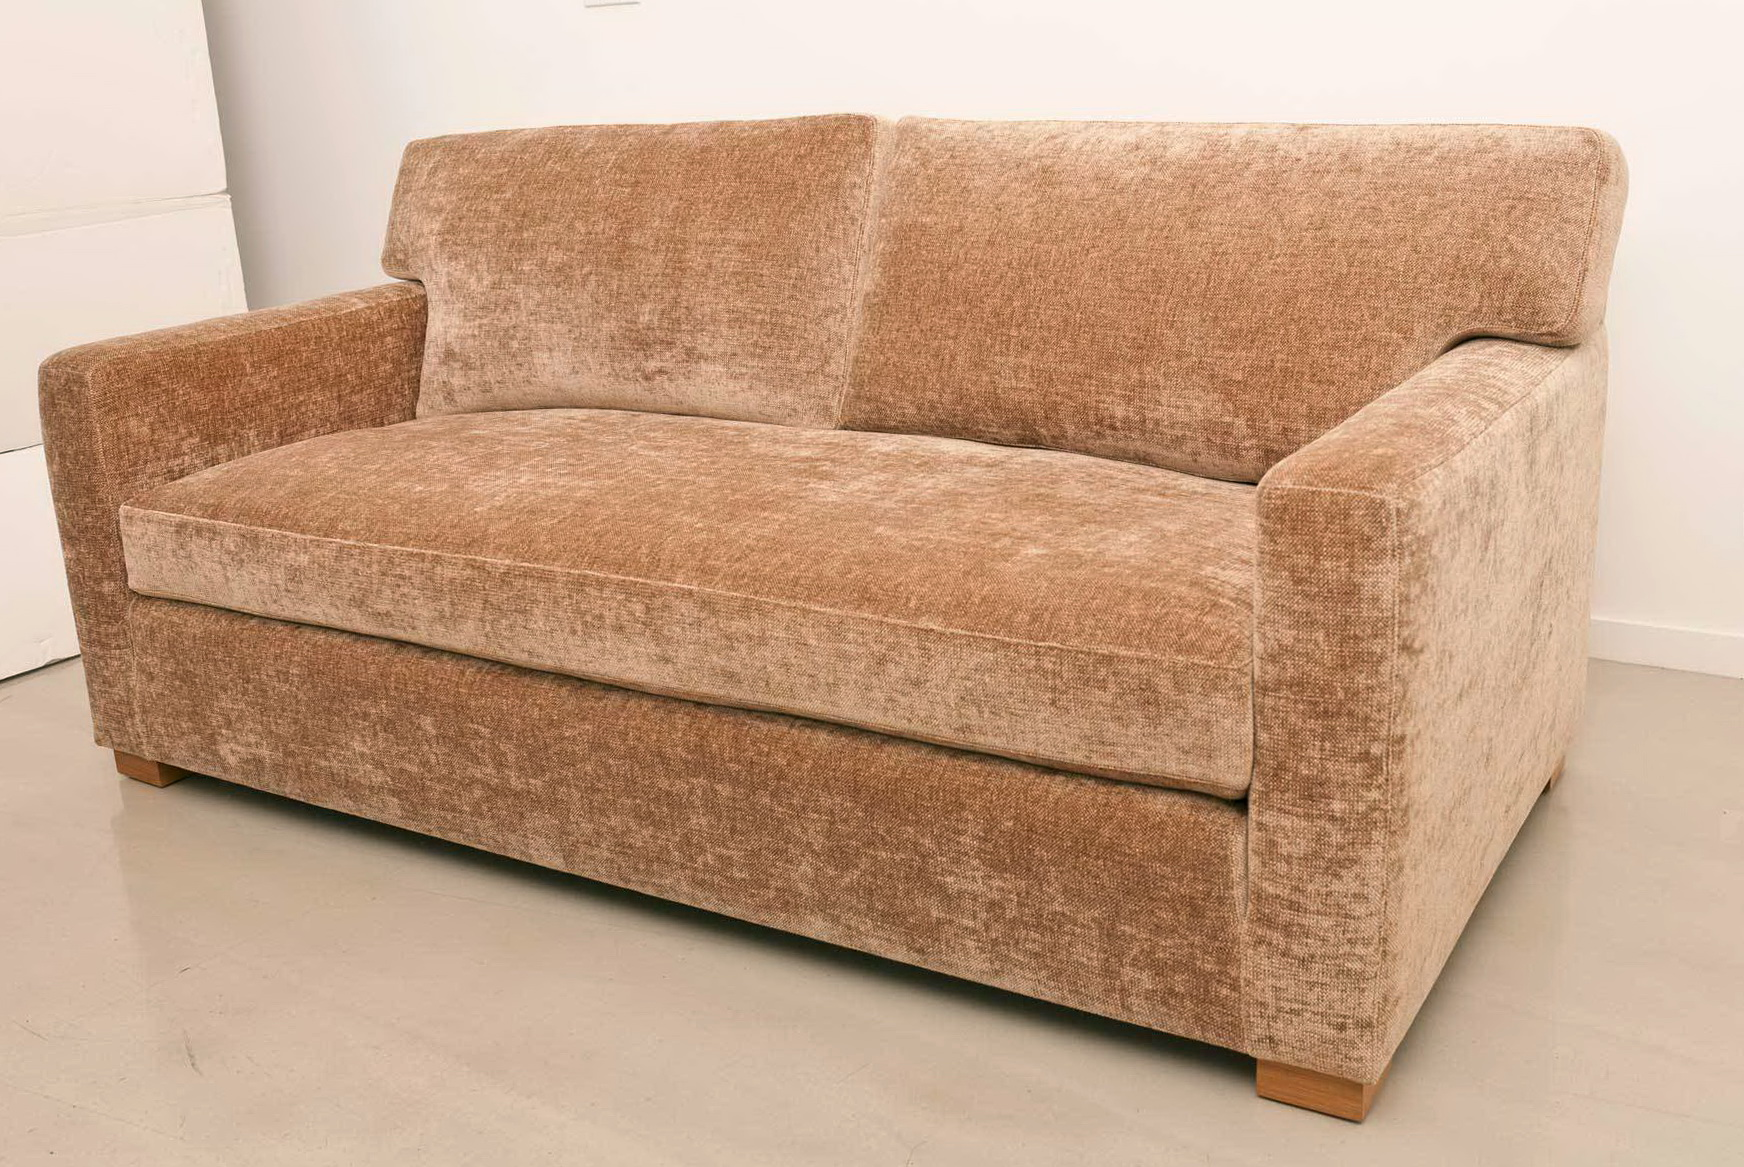 Replacement cushions for sofa bed home design ideas for Sofa bed repair